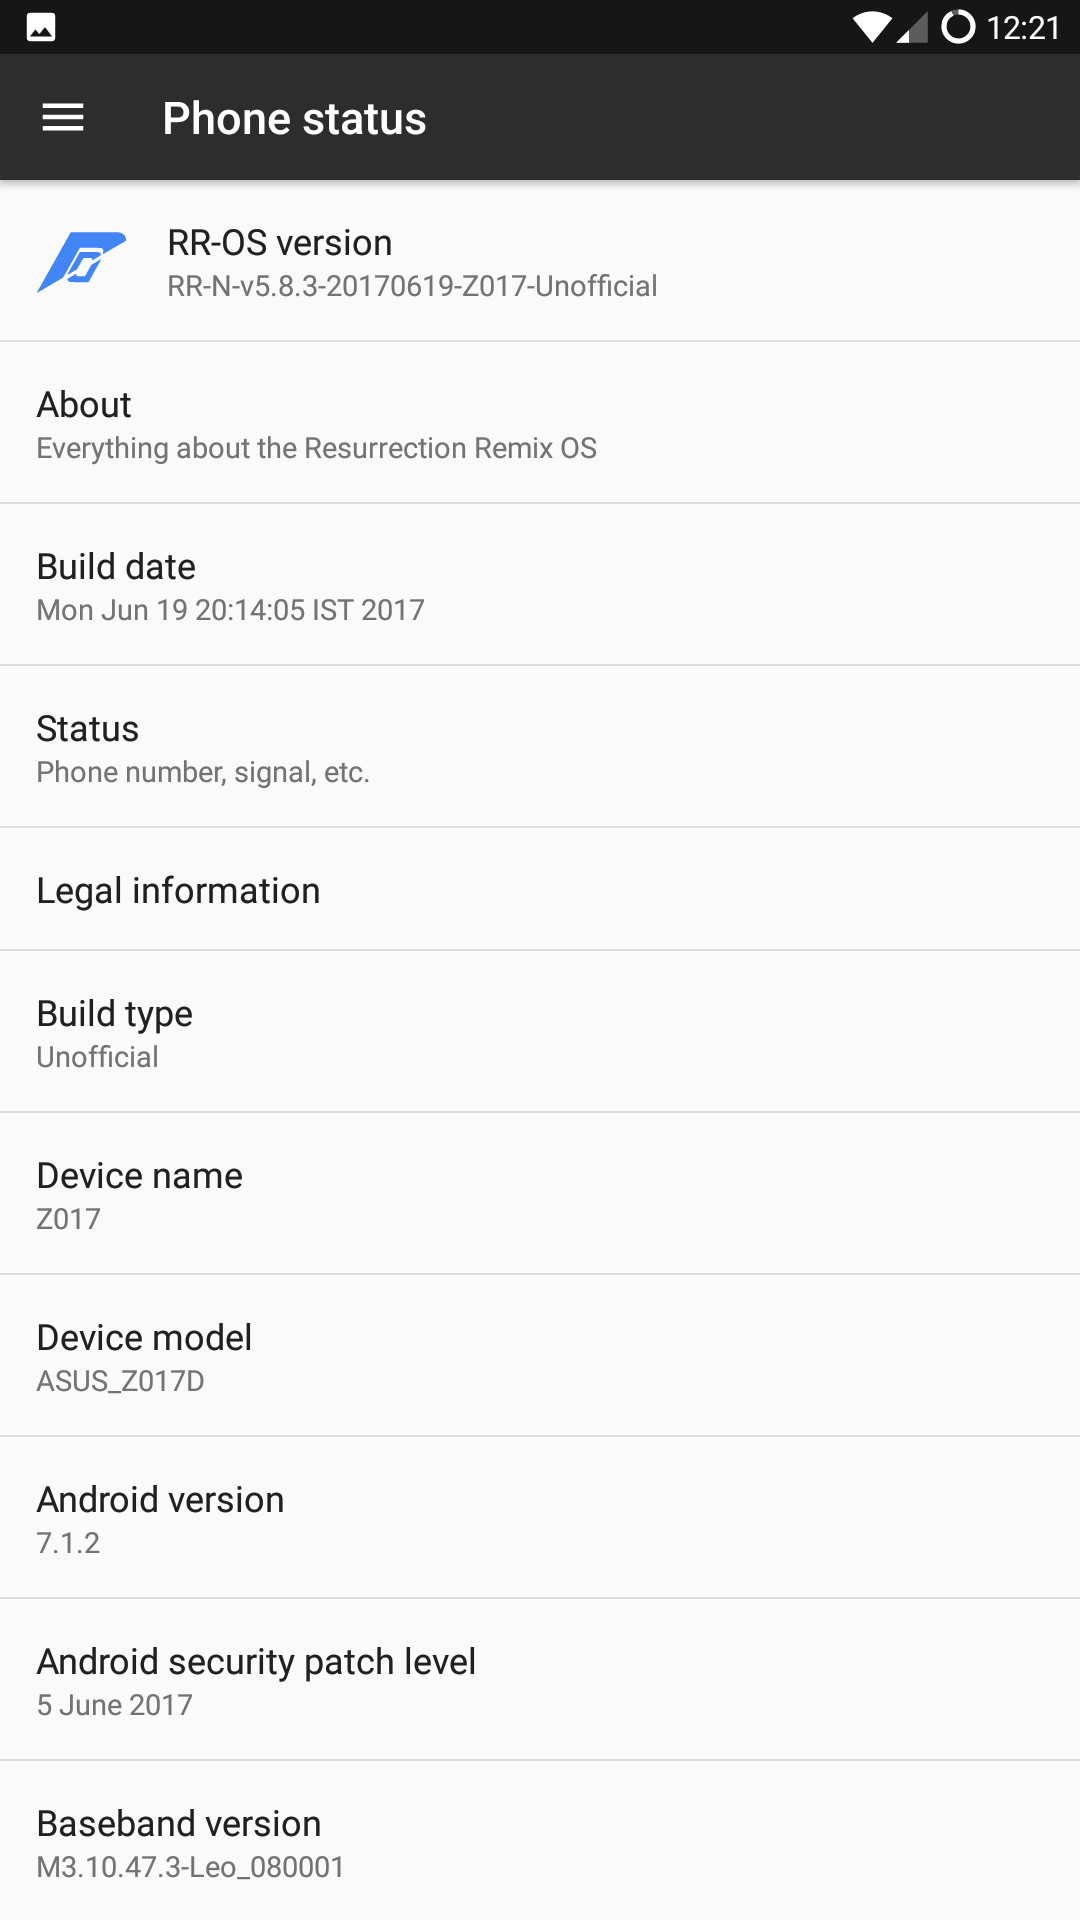 RR 5.8.3 ROM 2 - Install 5.8.3 Resurrection Remix Nougat ROM For Zenfone 3